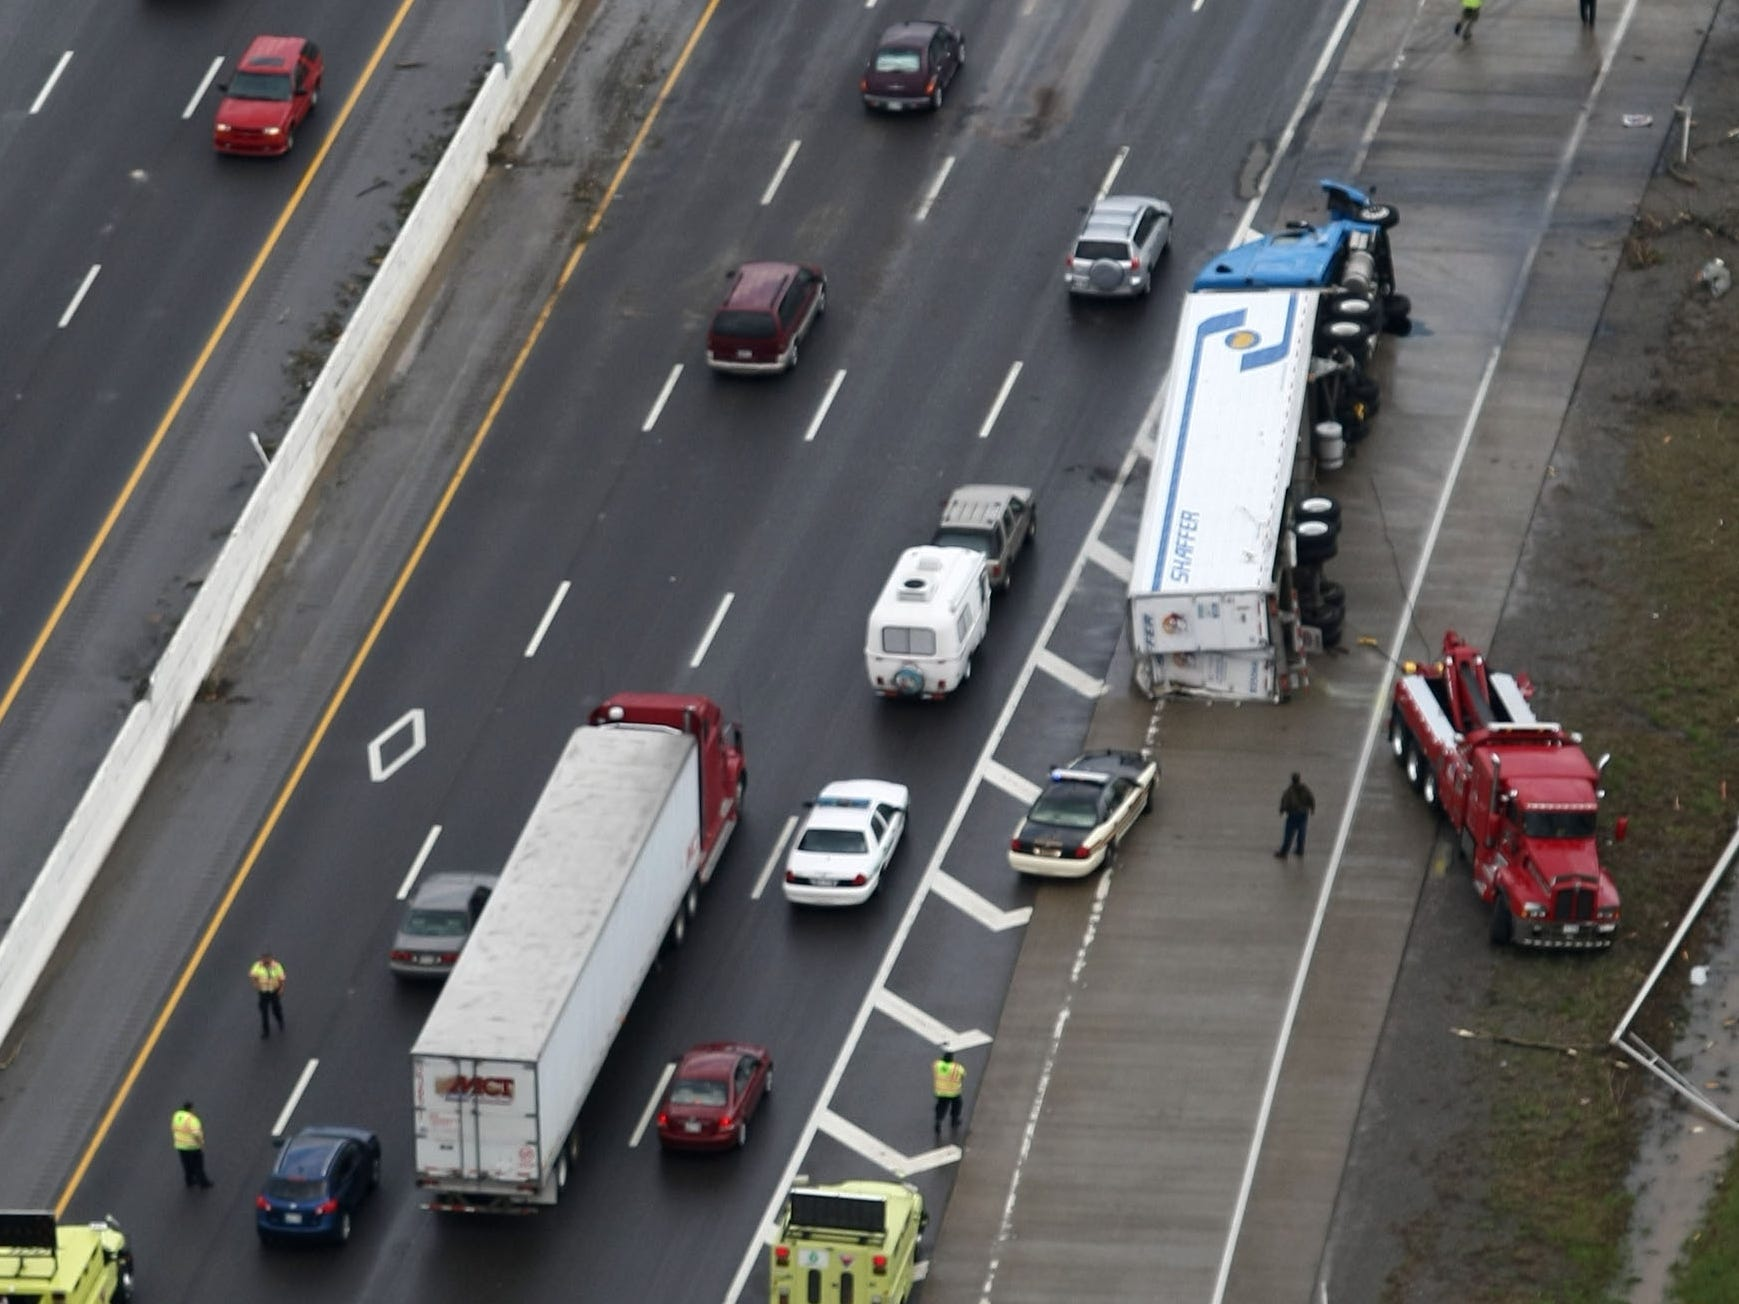 A tractor trailer truck was turned on its side as a result of a tornado along I-24 in Murfreesboro causing traffic problems along the interstate. The tornado cut a 10 mile path through the city.  April 10, 2009 (photo GEORGE WALKER IV / THE TENNESSEAN)